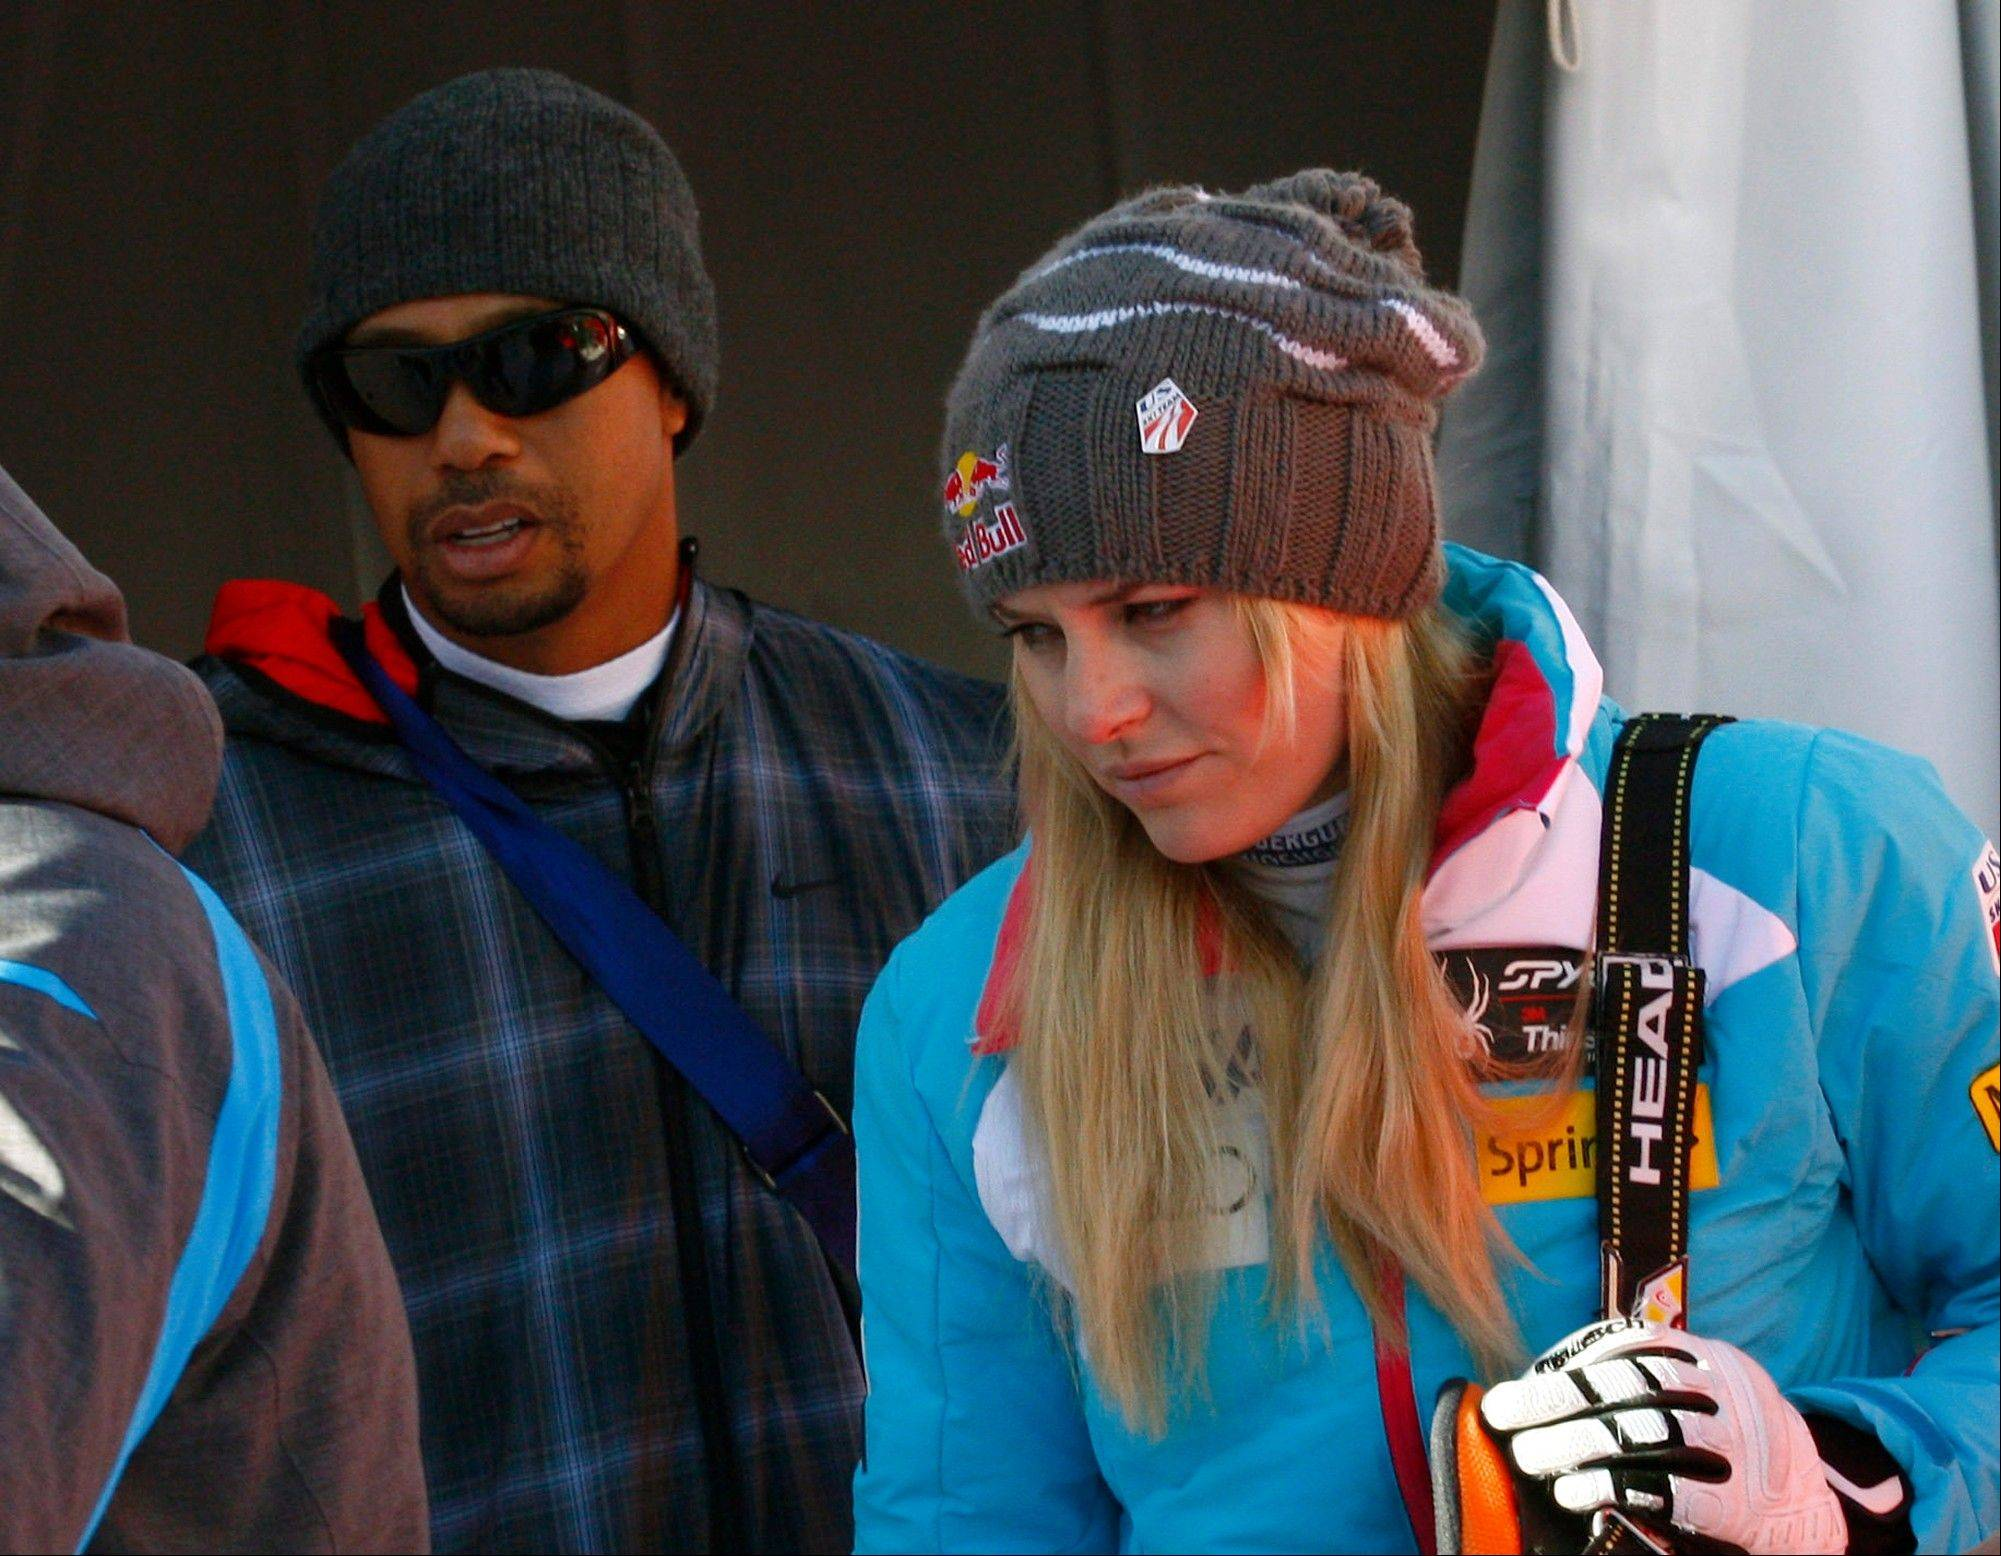 Lindsey Vonn is flanked by her boyfriend Tiger Woods as she leaves after an alpine ski, women's World Cup downhill, in Val D'Isere, France, Saturday, Dec. 21, 2013. Lindsey Vonn is confident that her latest knee trouble will not stop her from competing at the Sochi Games in February. With boyfriend Tiger Woods watching from the bottom of the slope, Vonn missed a gate in Saturday's World Cup downhill at Val d'Isere as her troublesome right knee buckled under her and gave way. The American was clearly distressed after skiing off course and looked close to tears. She didn't fall but grimaced as she pulled up, clutching her knee. (AP Photo/Giovanni Auletta)